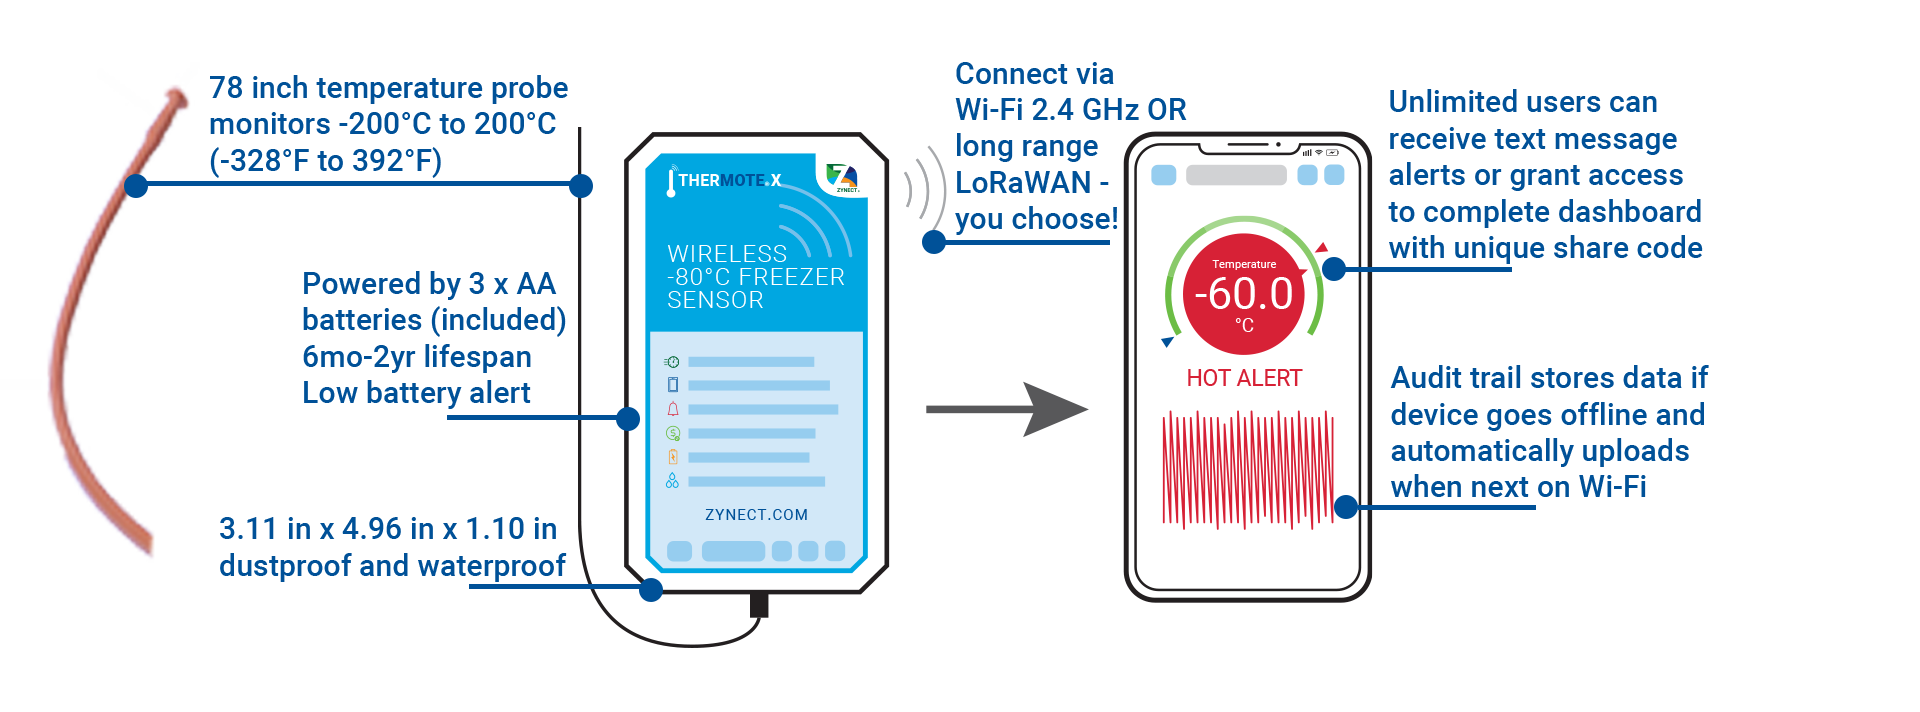 The Thermote connects wireless to your smartphone, download the Zynect sensors app for audit trails and custom alerts